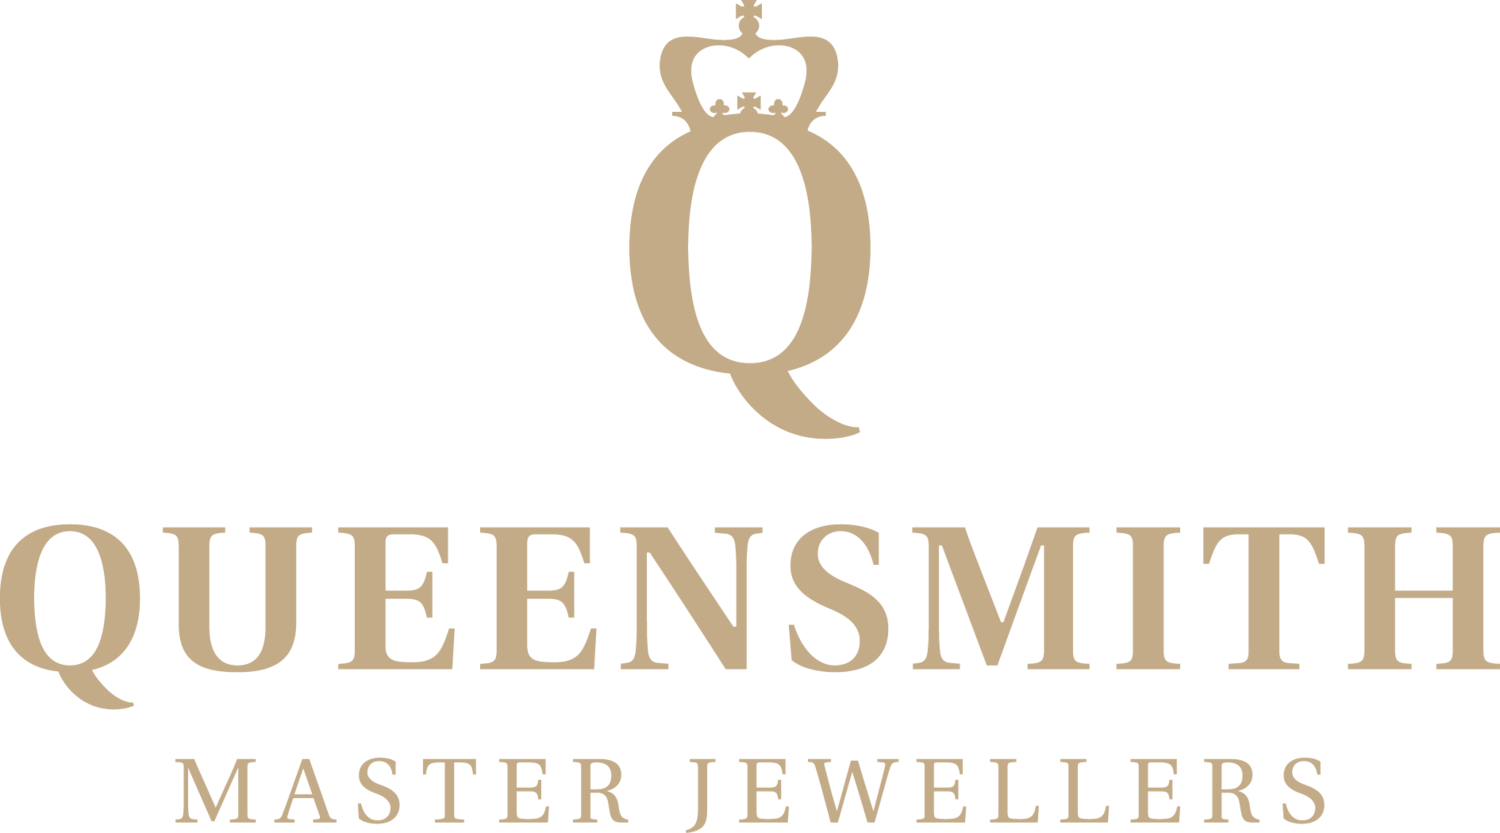 Hatton Garden Jewellers | Queensmith Master Jewellers